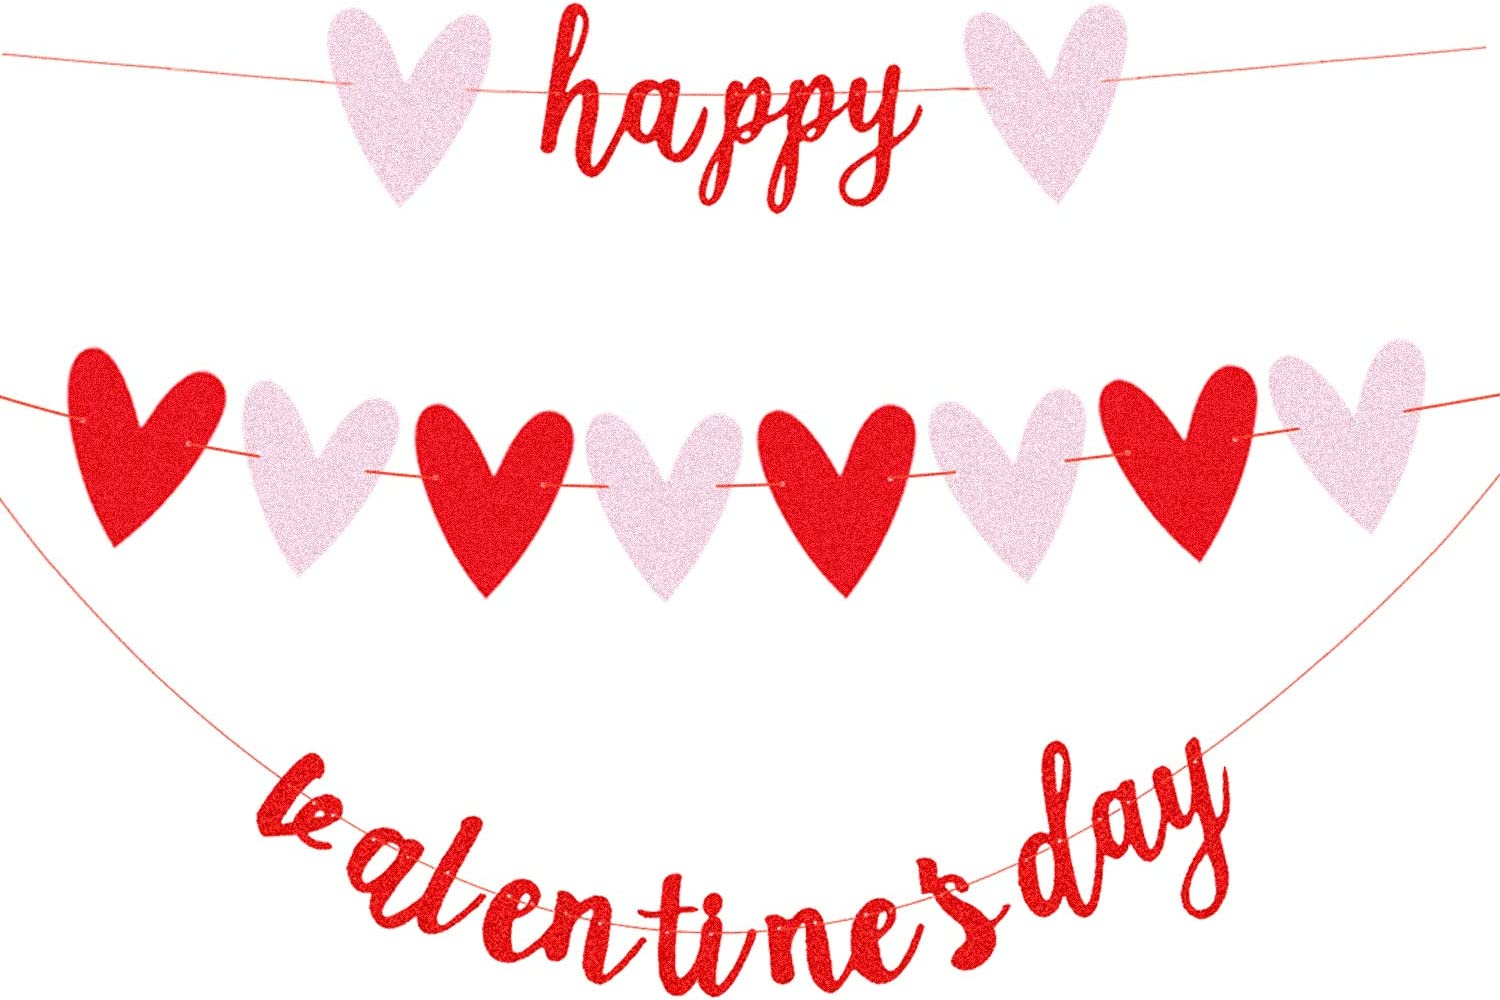 JOZON Happy Valentine's Day Red Glittery Banner and Glittery Heart Banner Valentine's Day Banner Garland Valentine's Day Decor for Wedding Anniversary Engagement Party Decorations Supplies